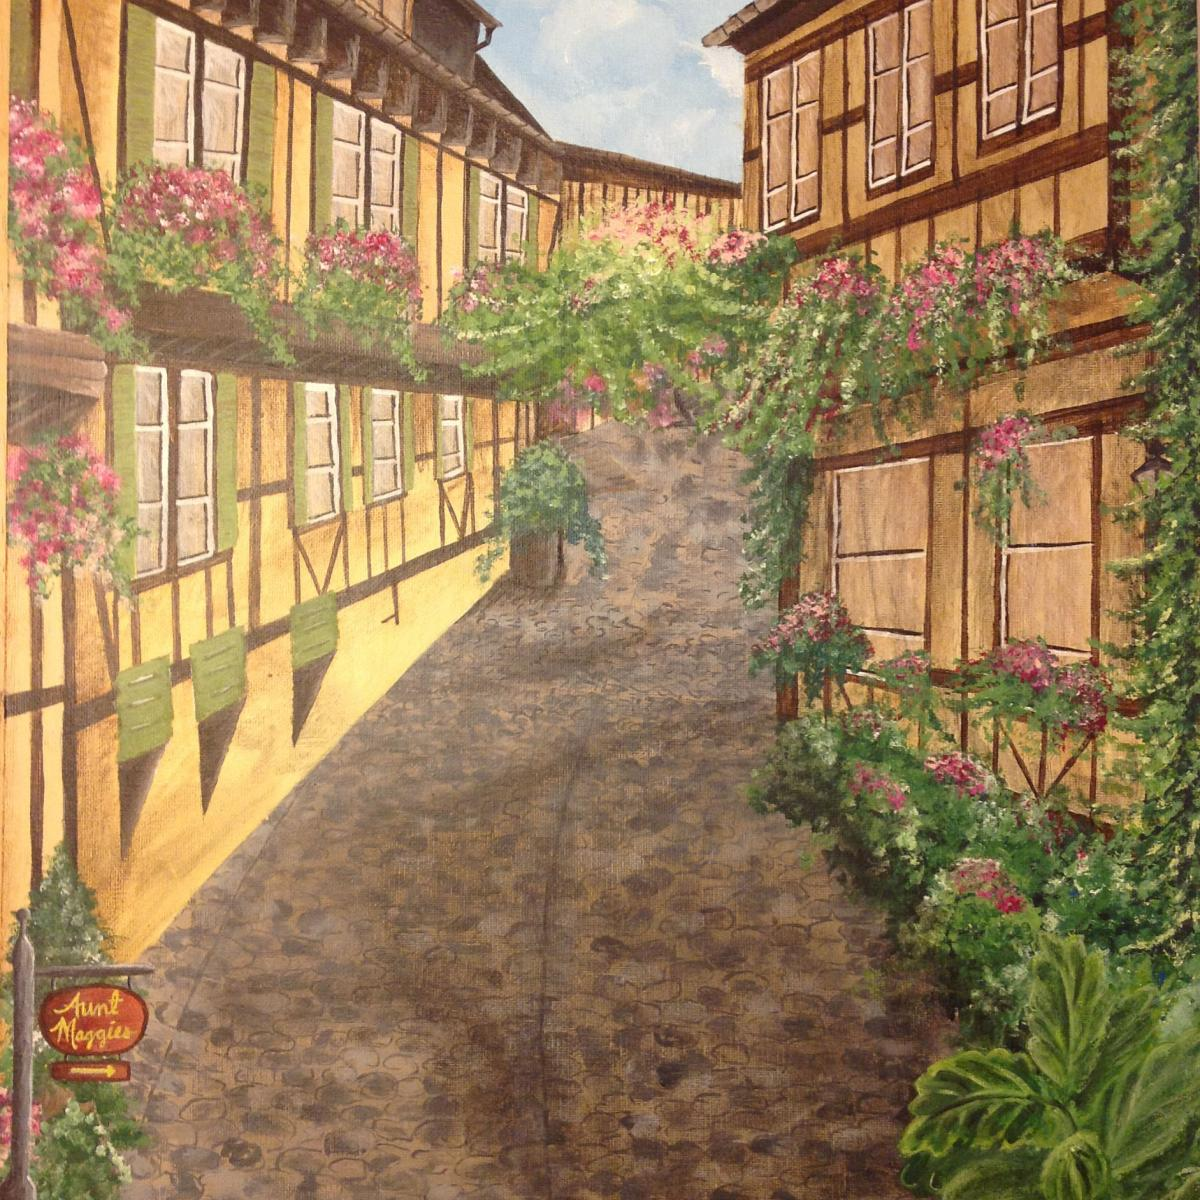 Oil painting of cobblestone street with two story village buildings with ivy covering them; appears like a European village in the summer.